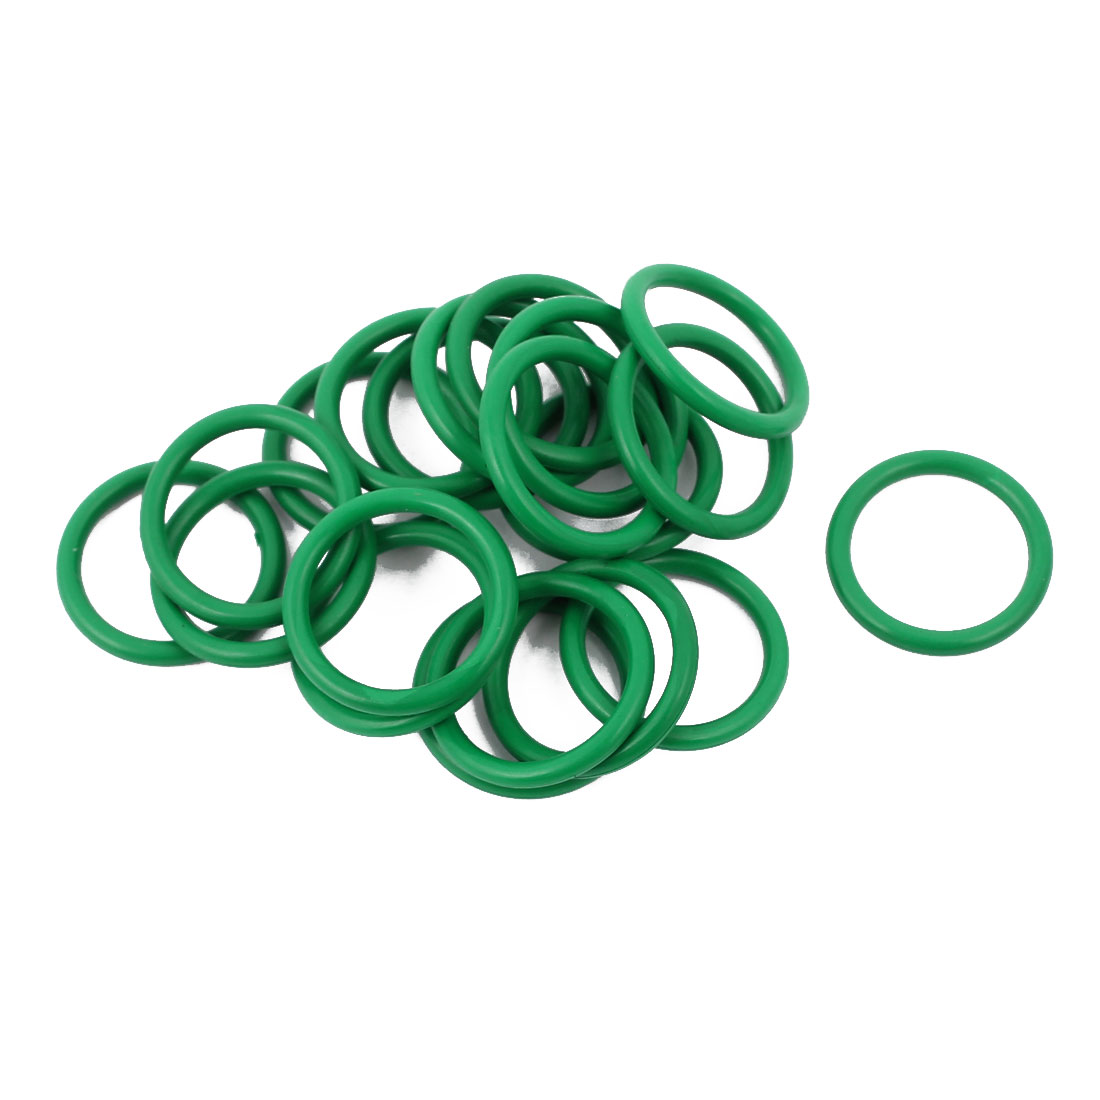 20pcs 1.9mm Thick Heat Resistant Mini Green O-Ring Rubber Sealing Ring 17mm OD